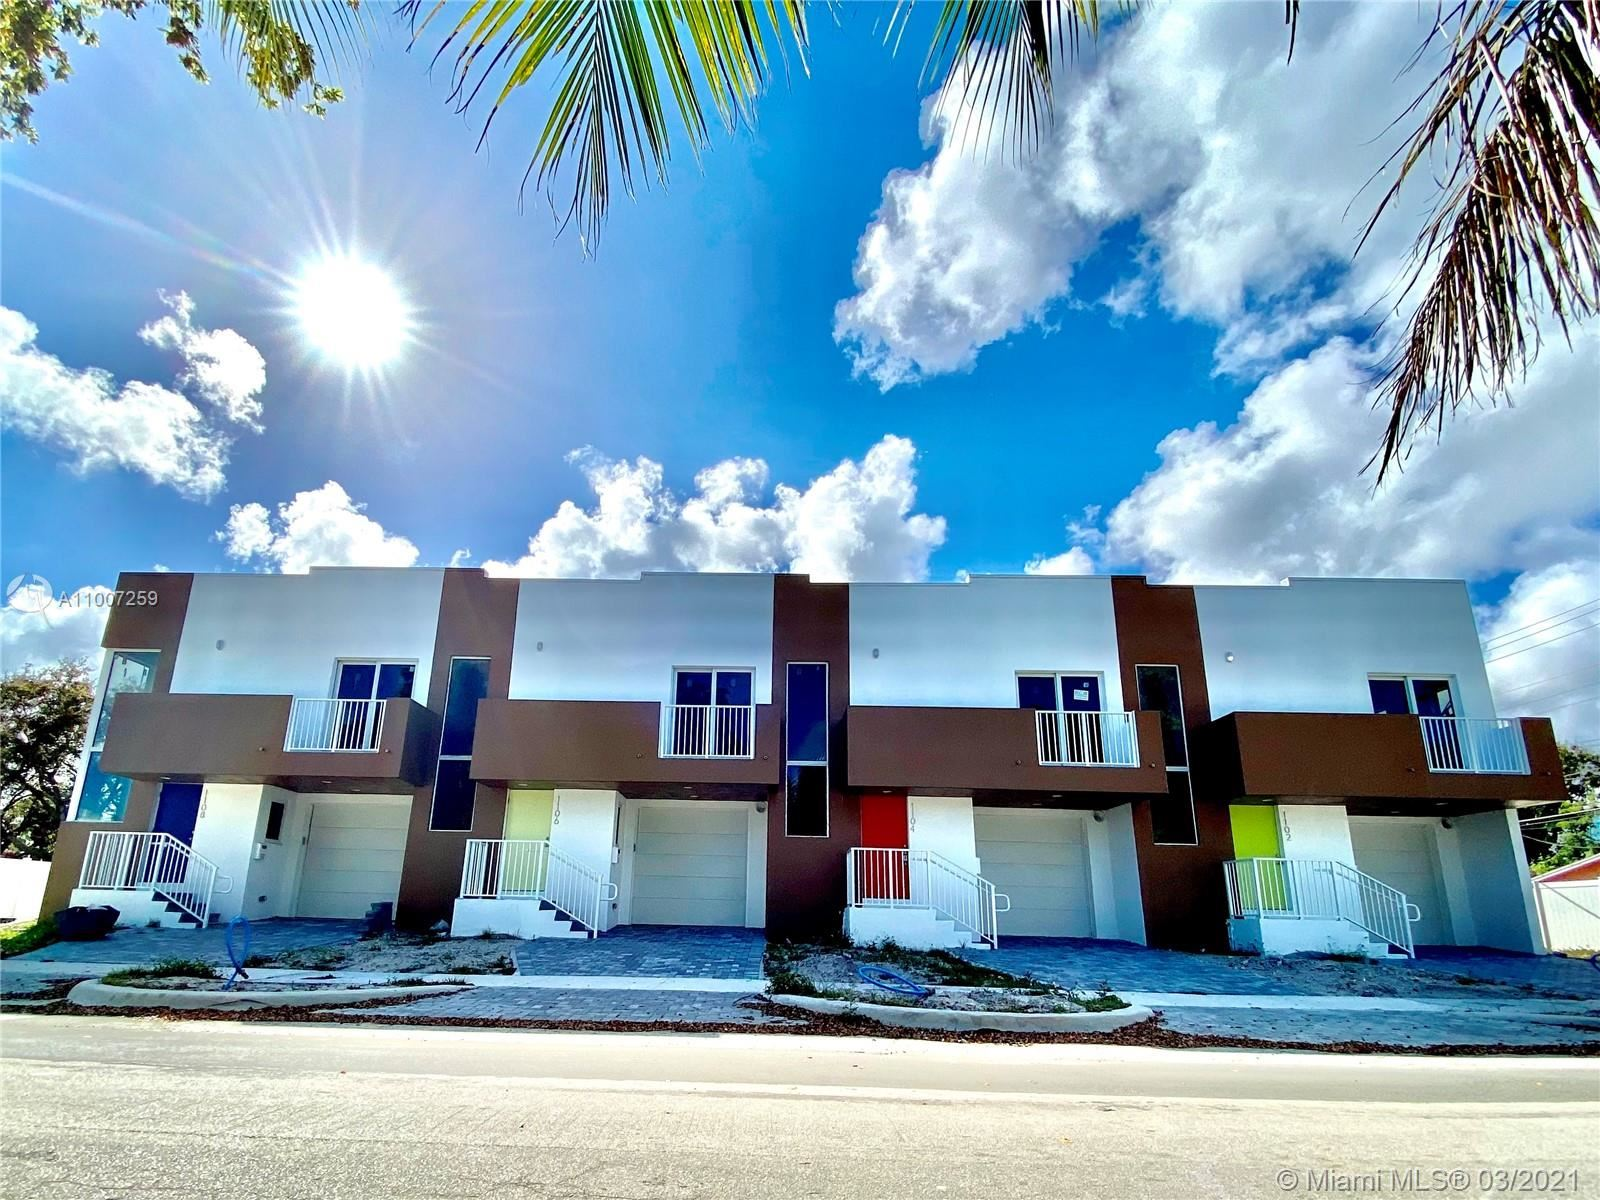 1102 S 20th Ave #1102, Hollywood, FL 33020 - #: A11007259